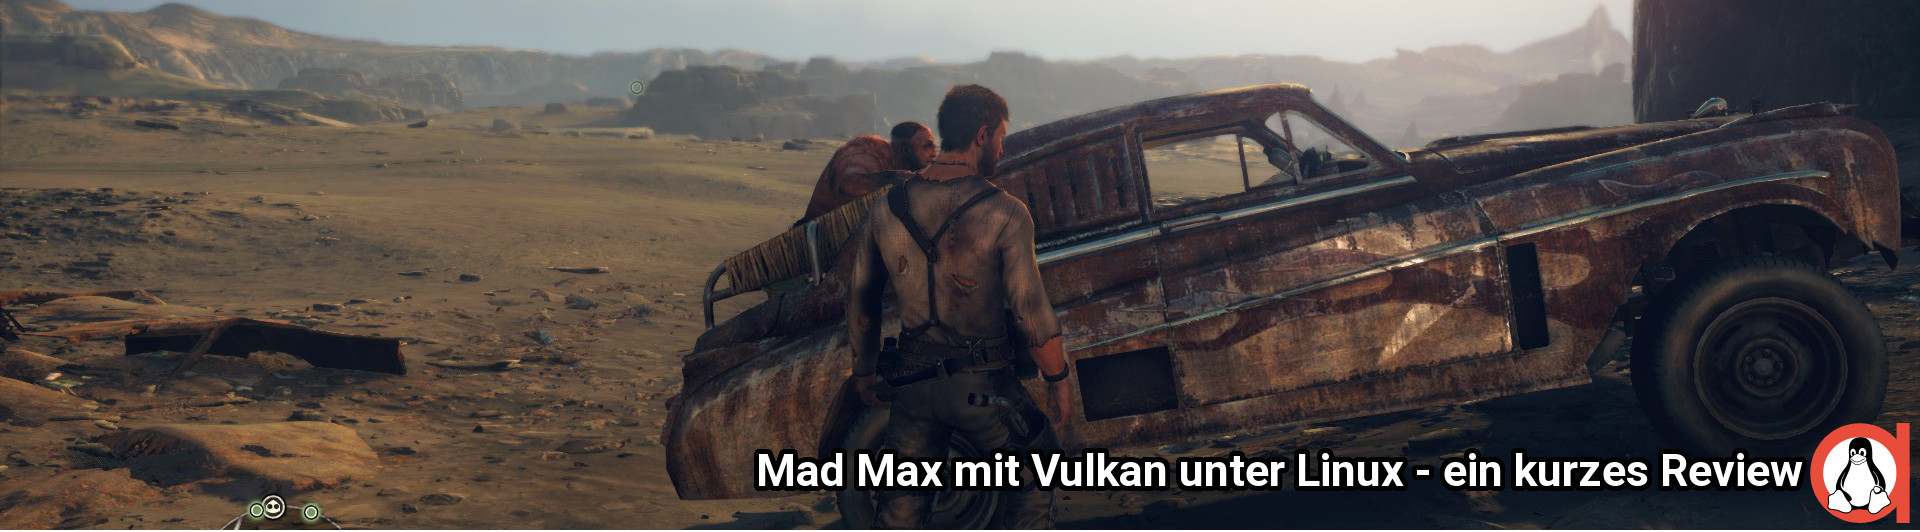 https://www.holarse-linuxgaming.de/sites/default/files/2017-11-16-1/madmax_teaser.jpg